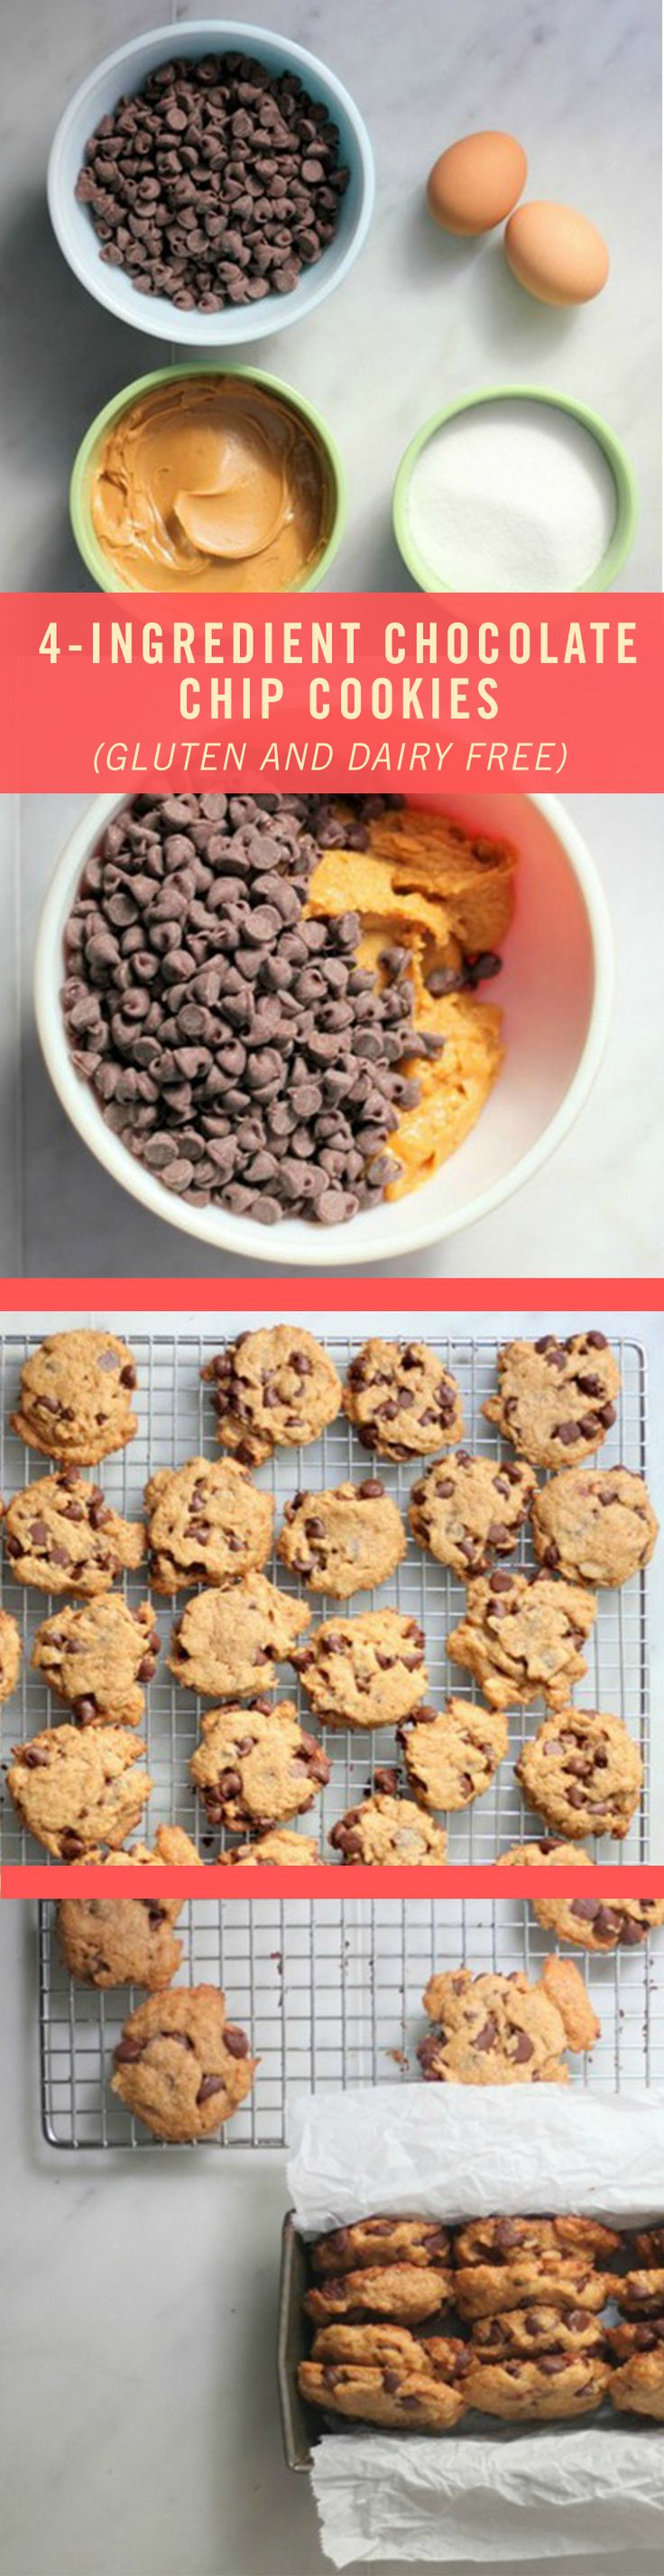 These gluten-free Chocolate Chip Cookies require just four ingredients: peanut butter, sugar, eggs, and chocolate chips. And the best part? You would never know that these are gluten-free. The texture is crispy, yet crumbly. This recipe is absolutely a keeper.